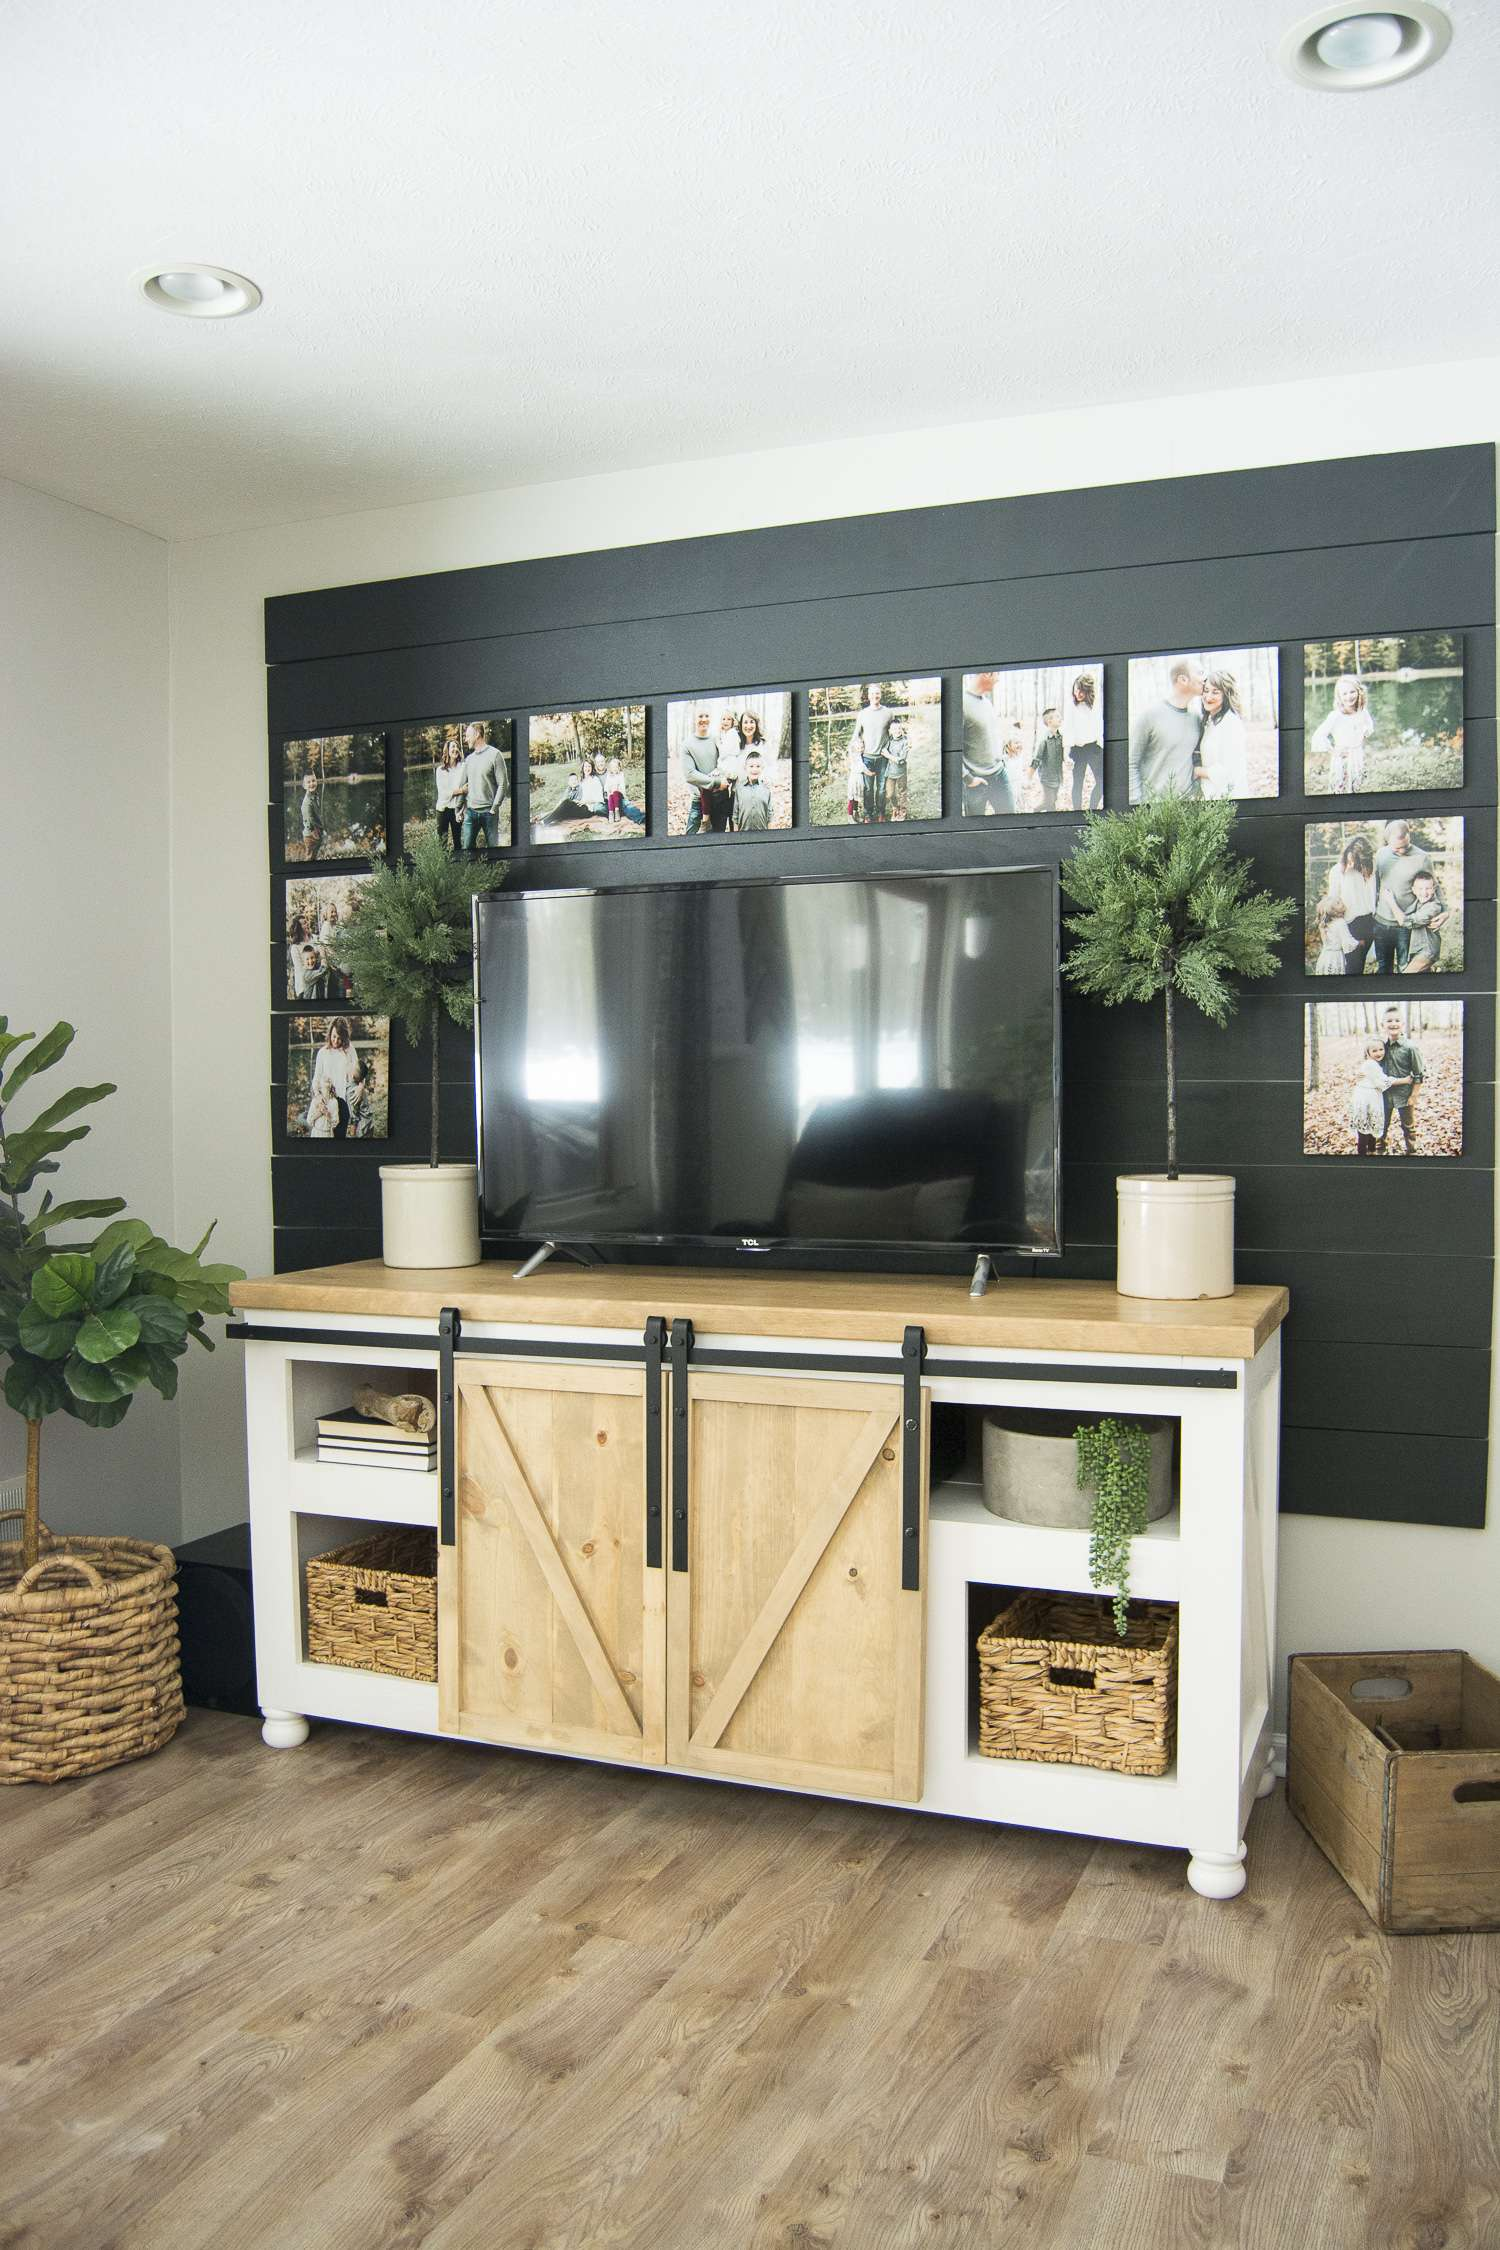 How to mask your TV. Here is my full home style guide with my best modern farmhouse decor sources. #fromhousetohaven #farmhouseinteriordesign #modernfarmhousestyle